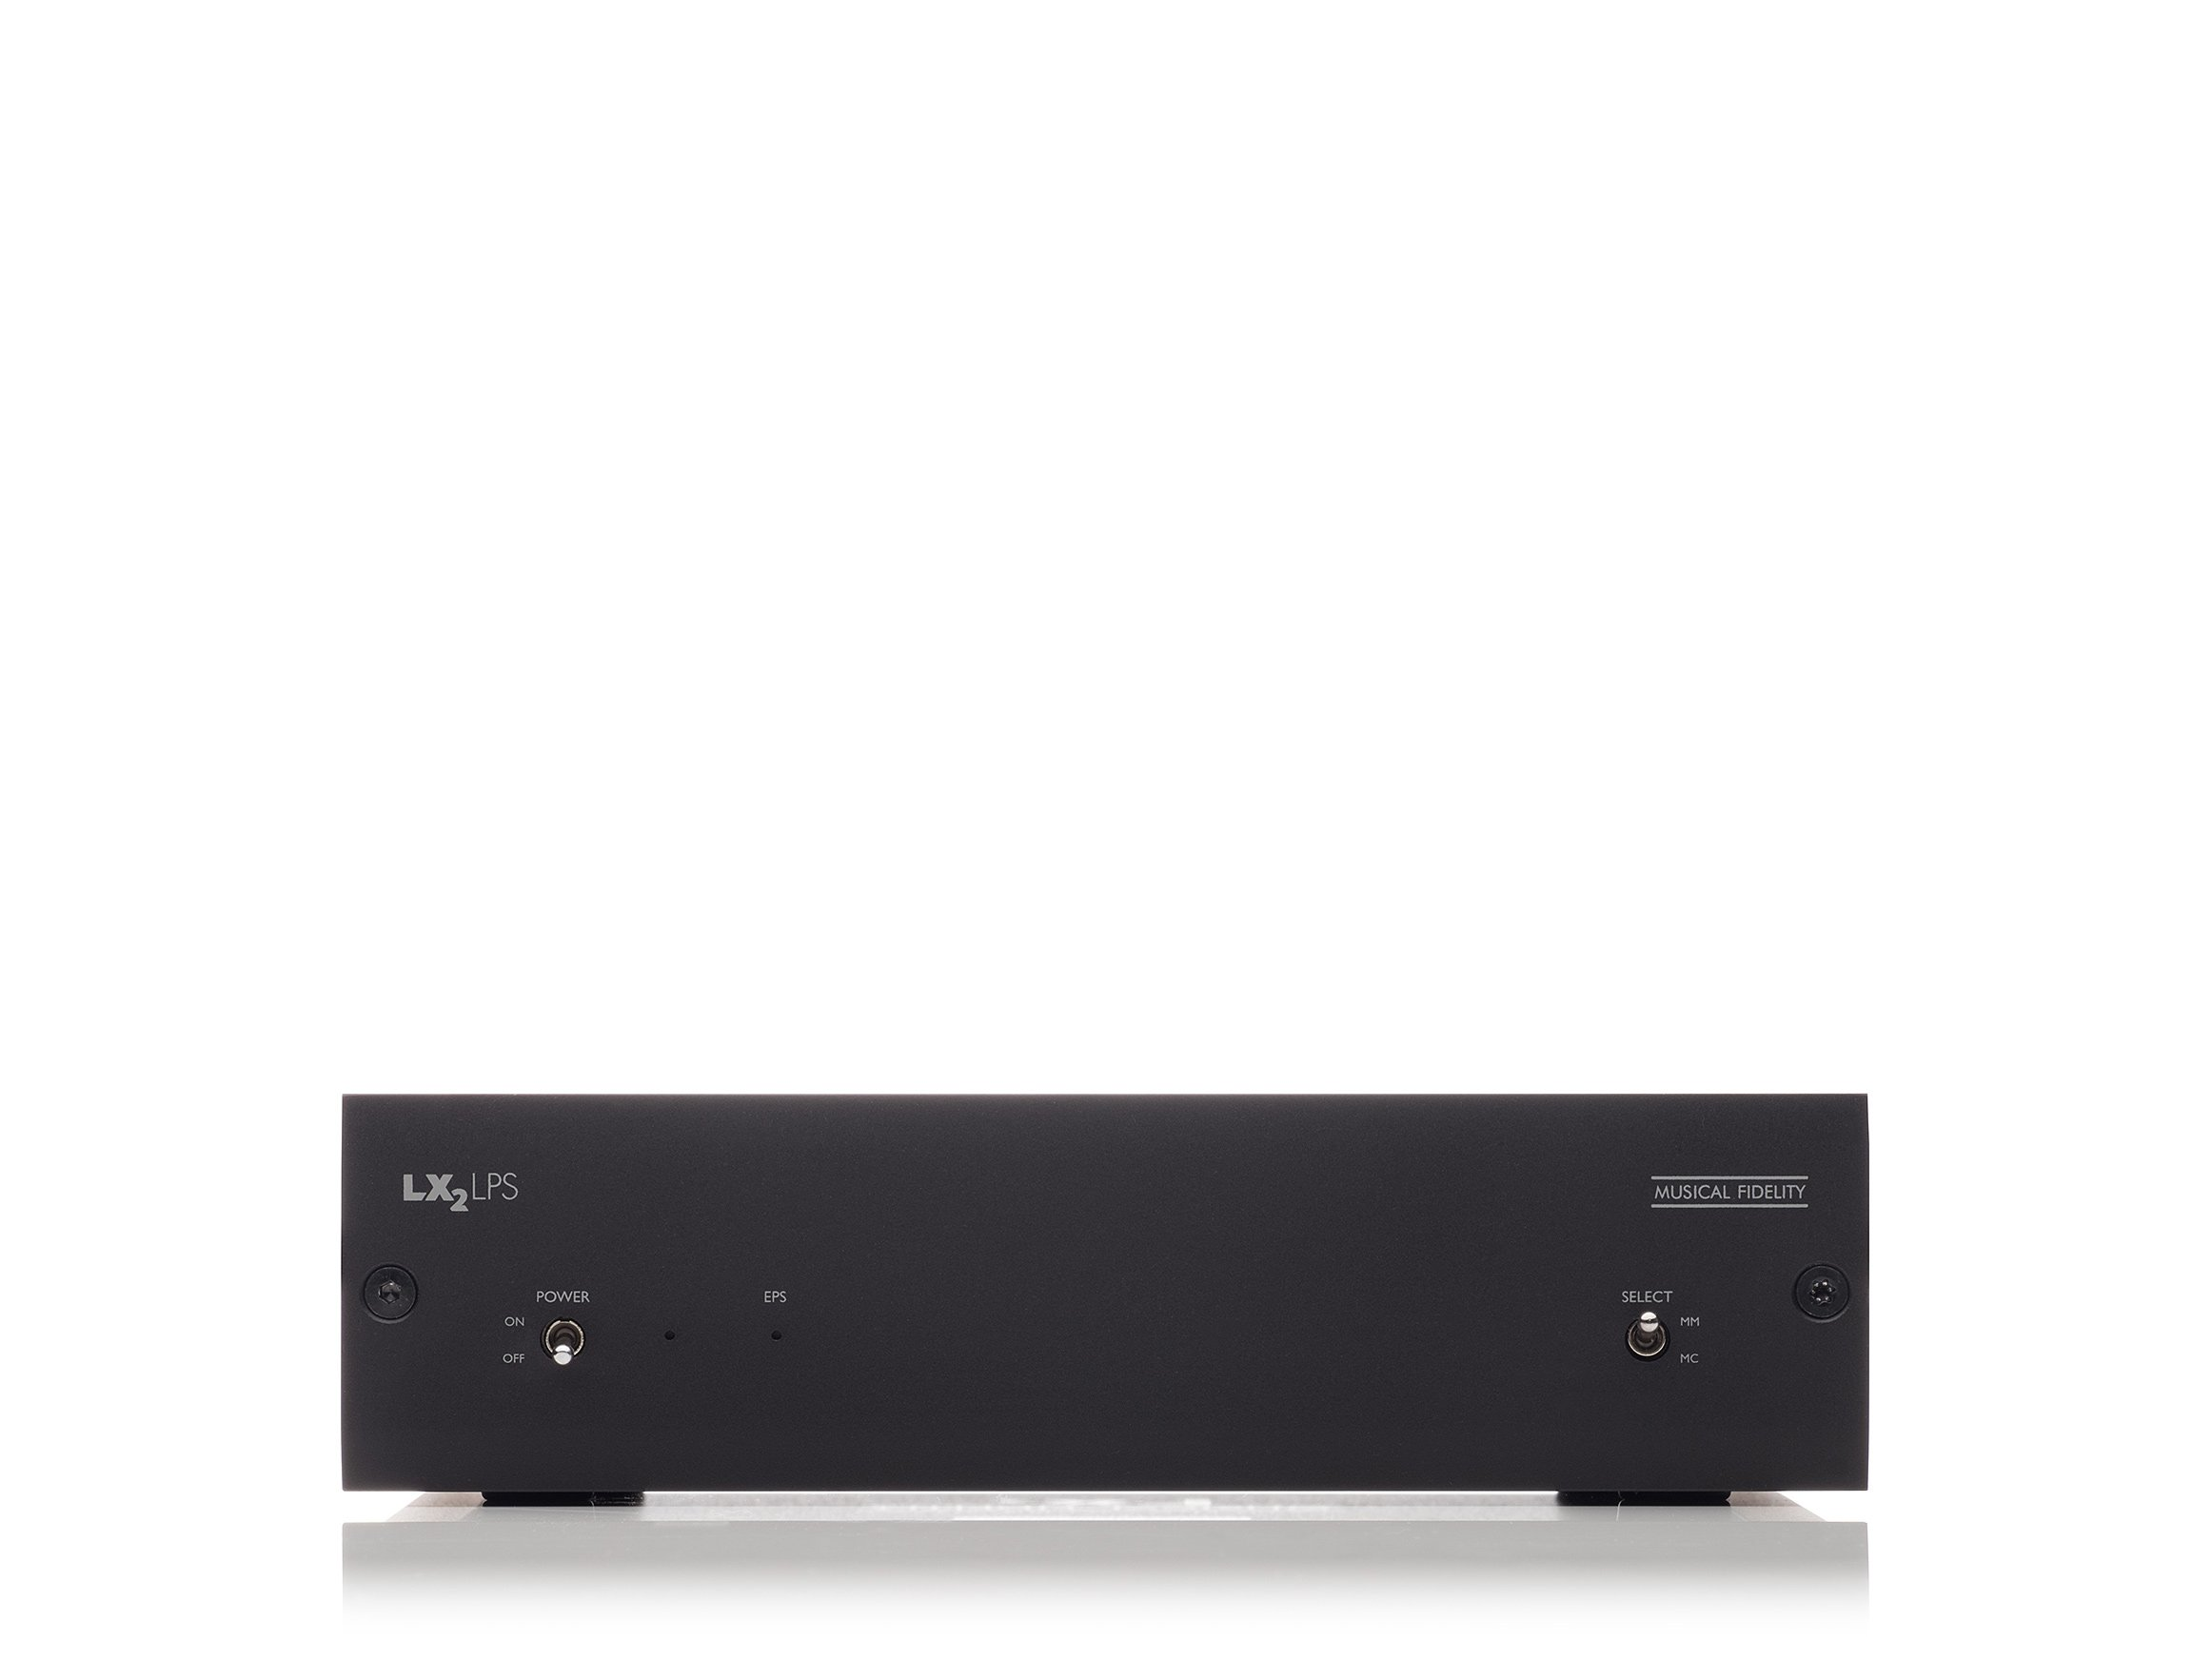 Musical Fidelity LX2-LPS MM/MC Phono Preamp (Black)